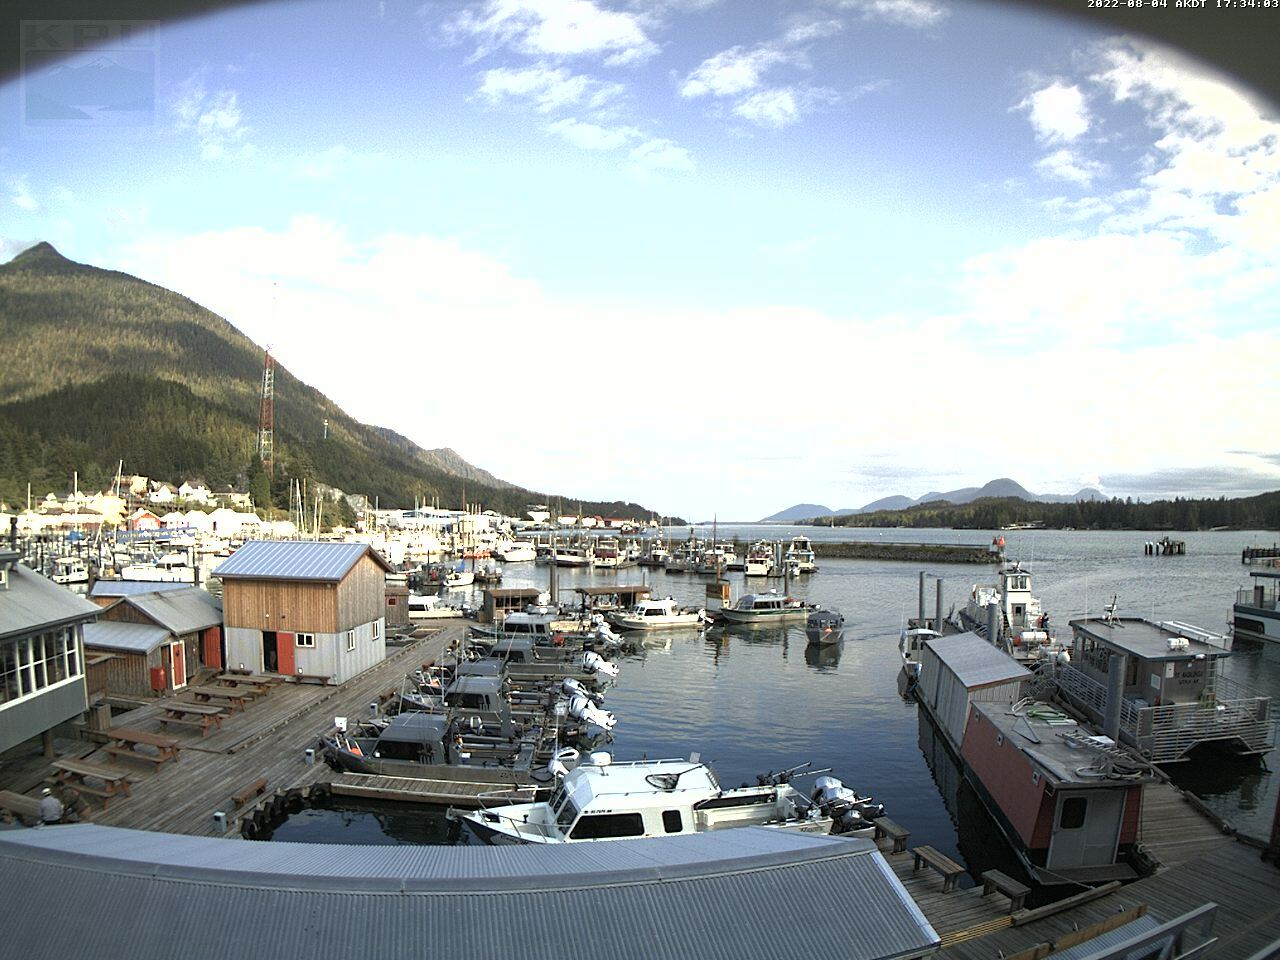 Current Ketchikan Webcam #6 Mega-View Image